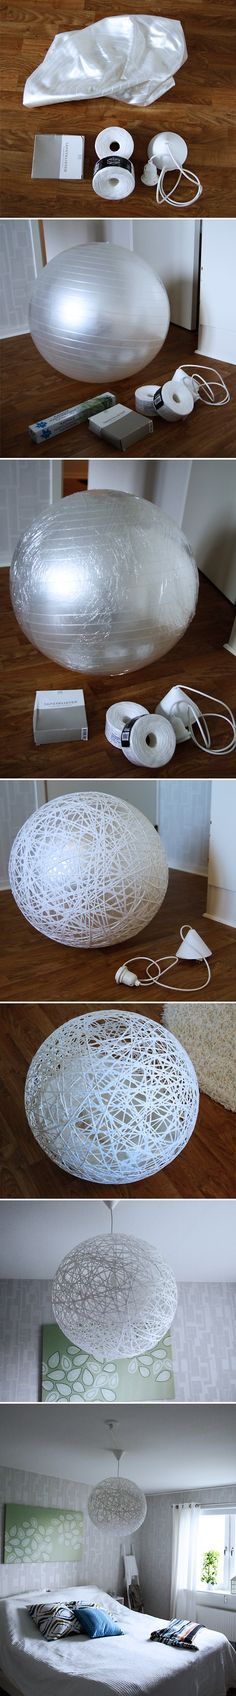 I love the random light, but they're so damned expensive! This DIY version could really add a splash of spontaneity to a room.